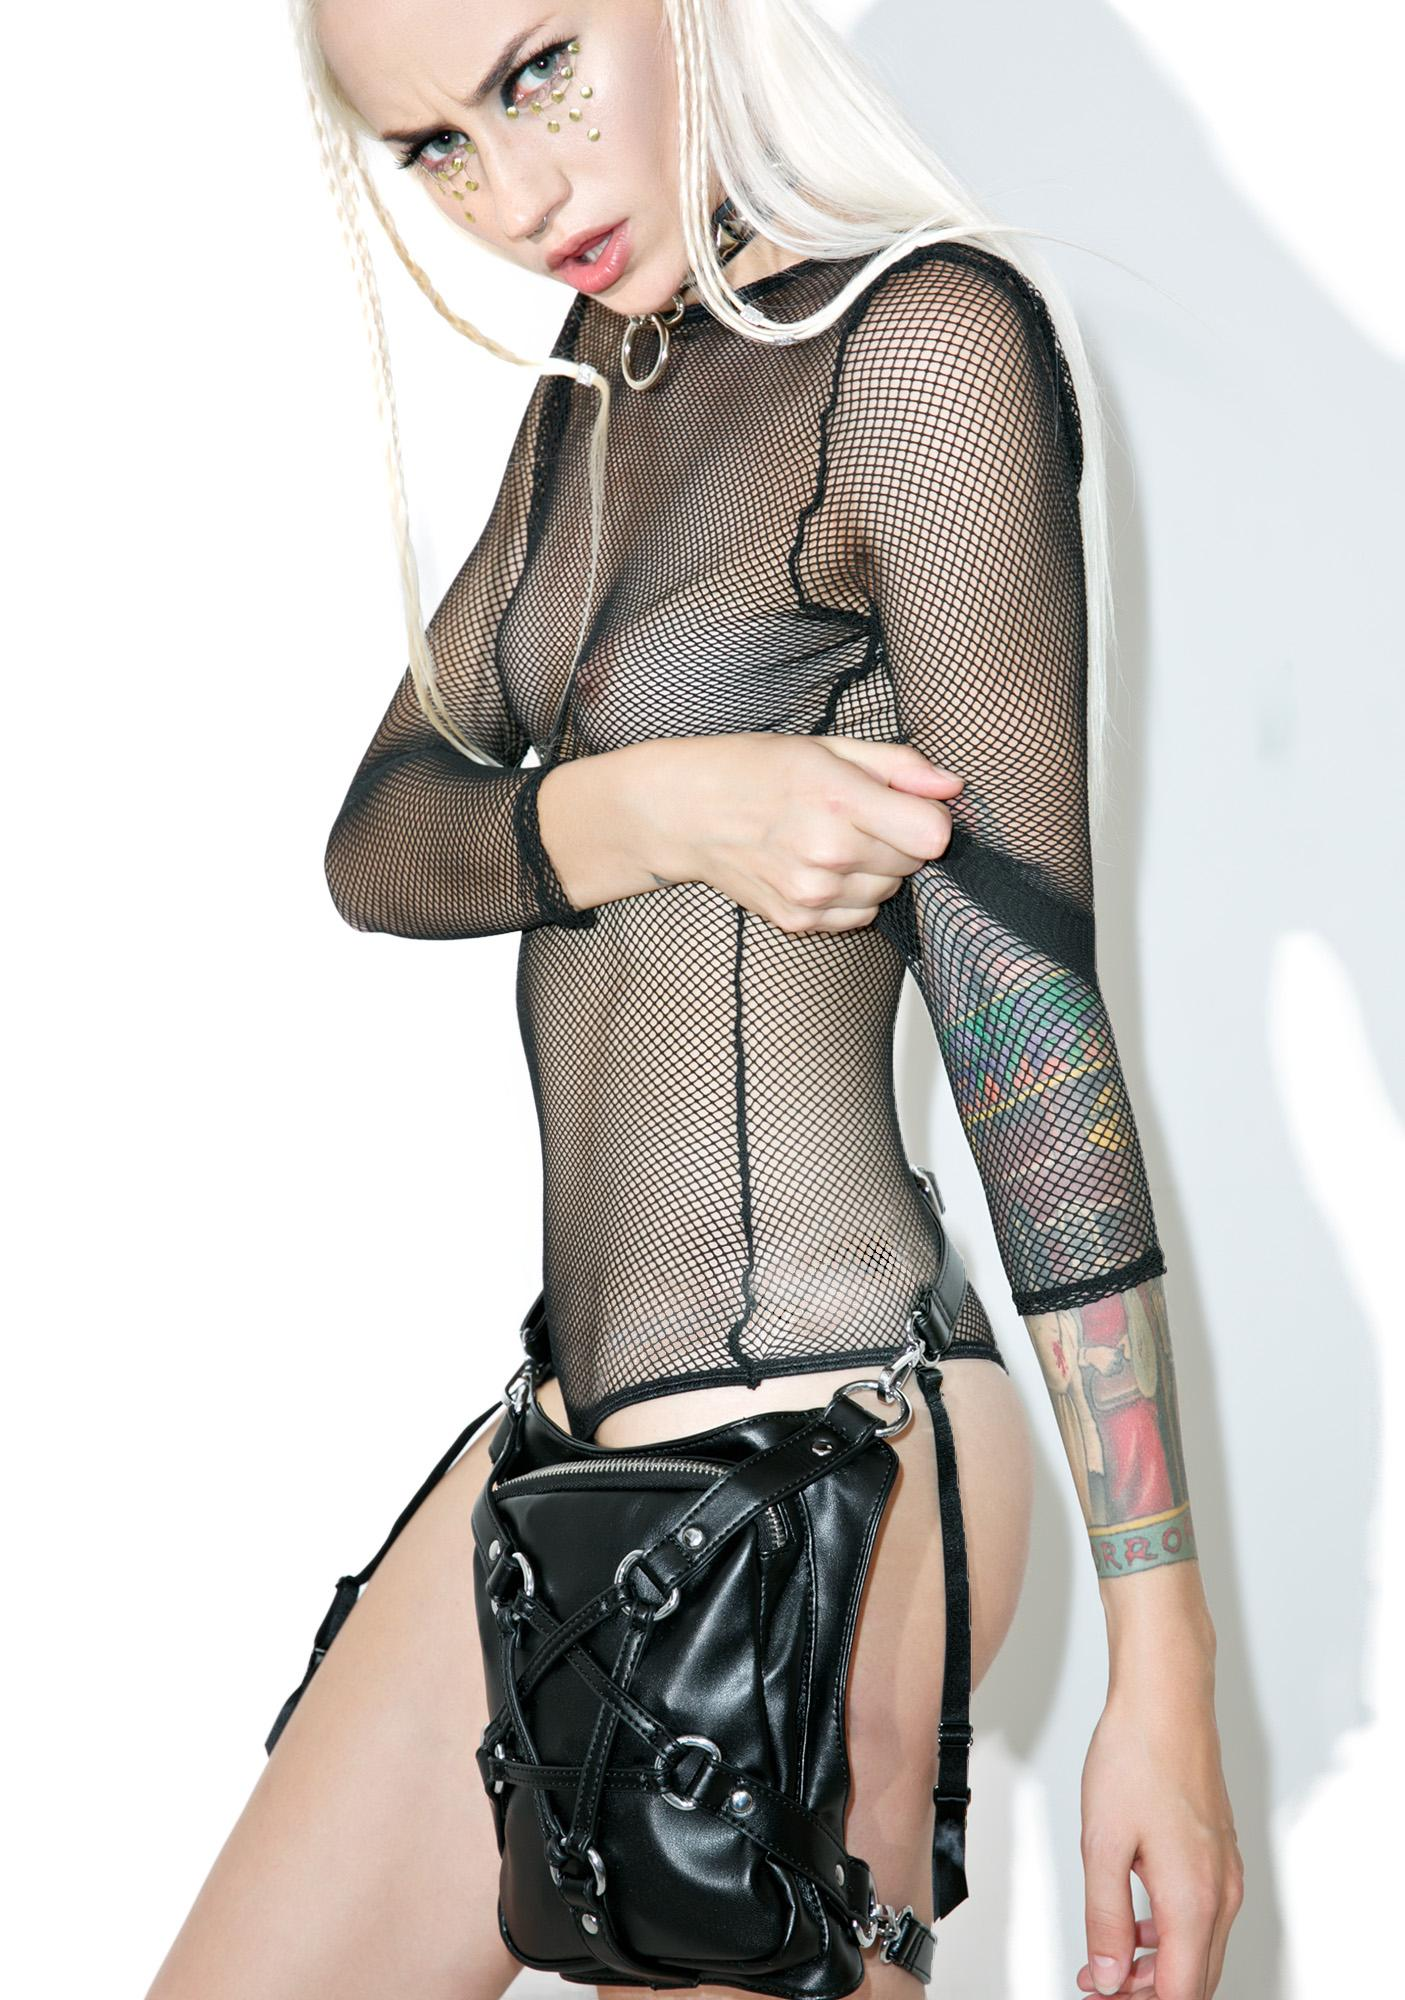 Sentry Fishnet Bodysuit